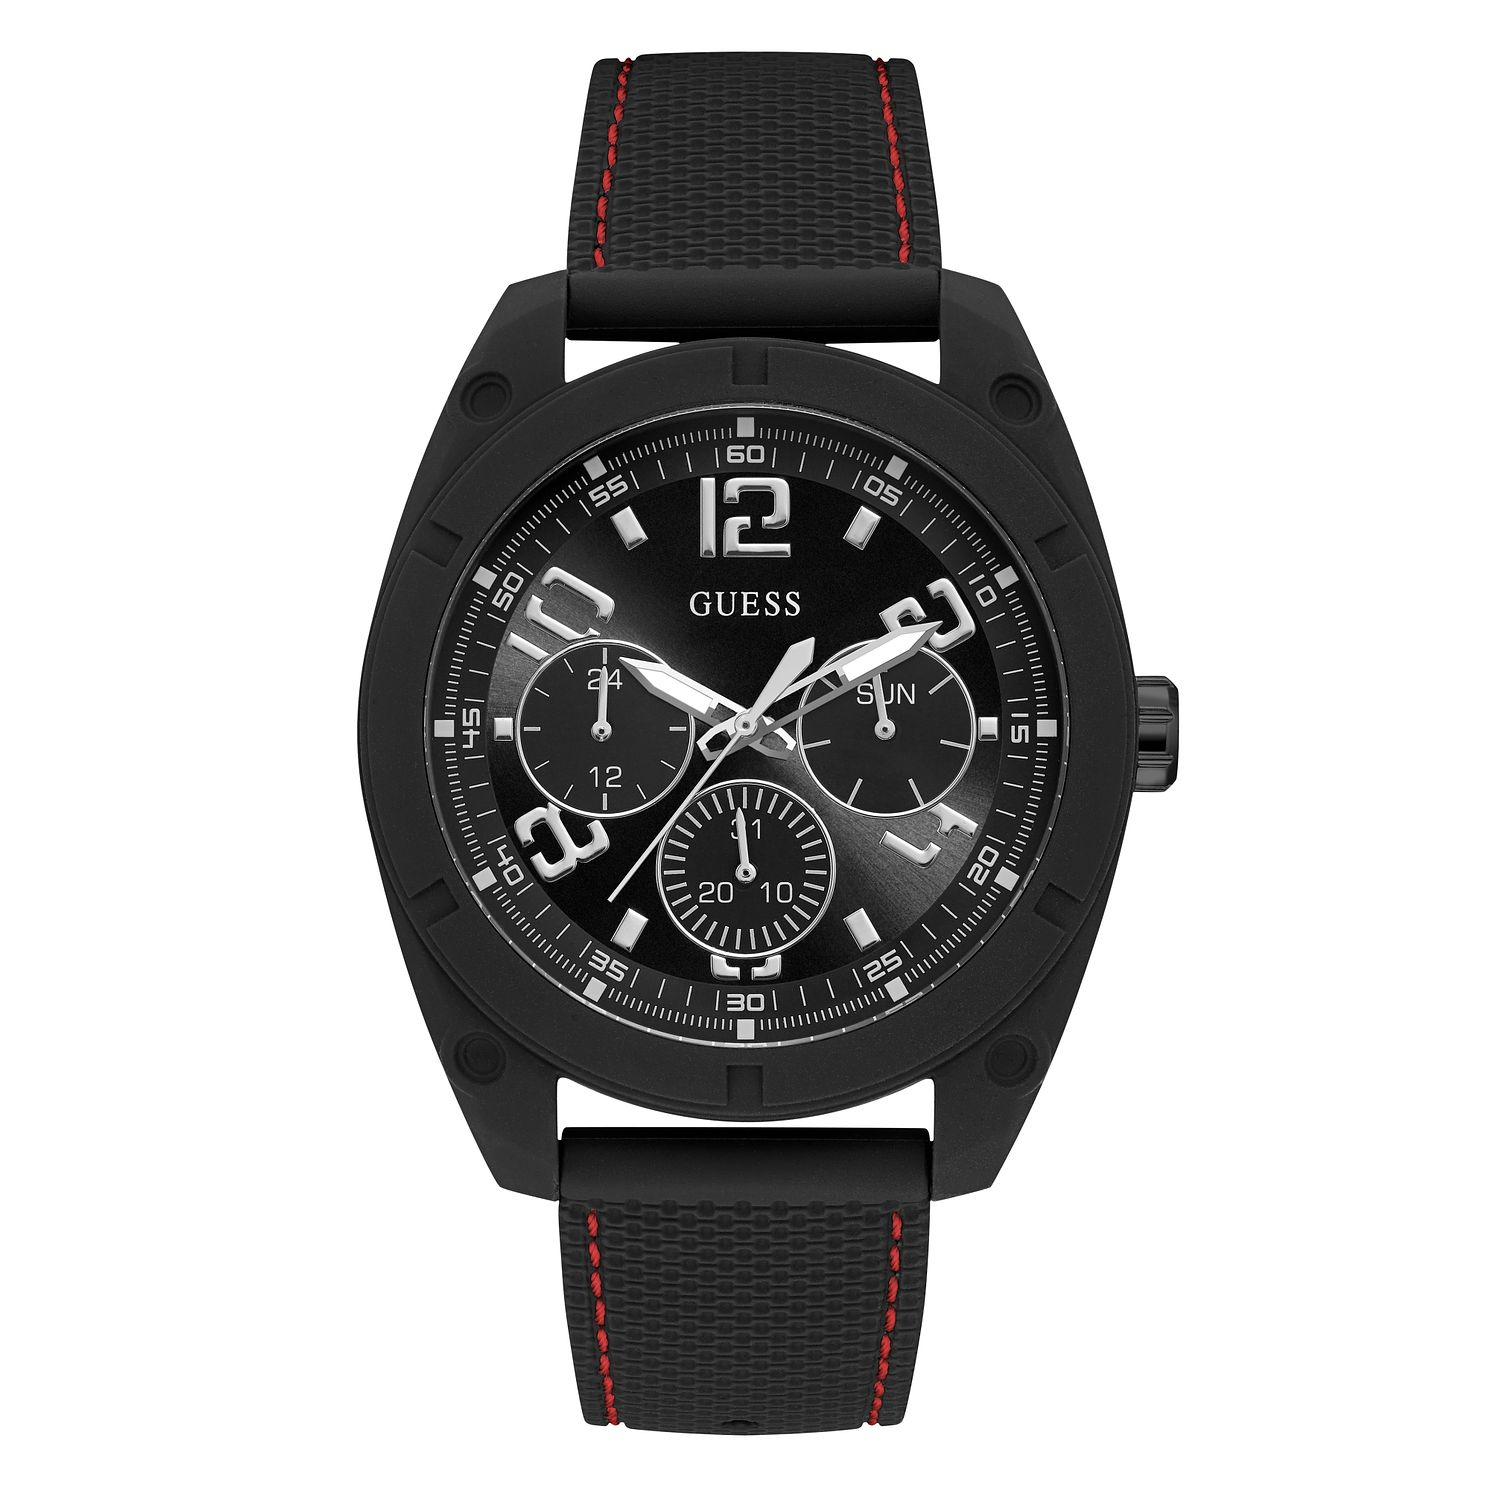 Guess Men's Black Dial Black Silicone Strap Watch - Product number 4094581